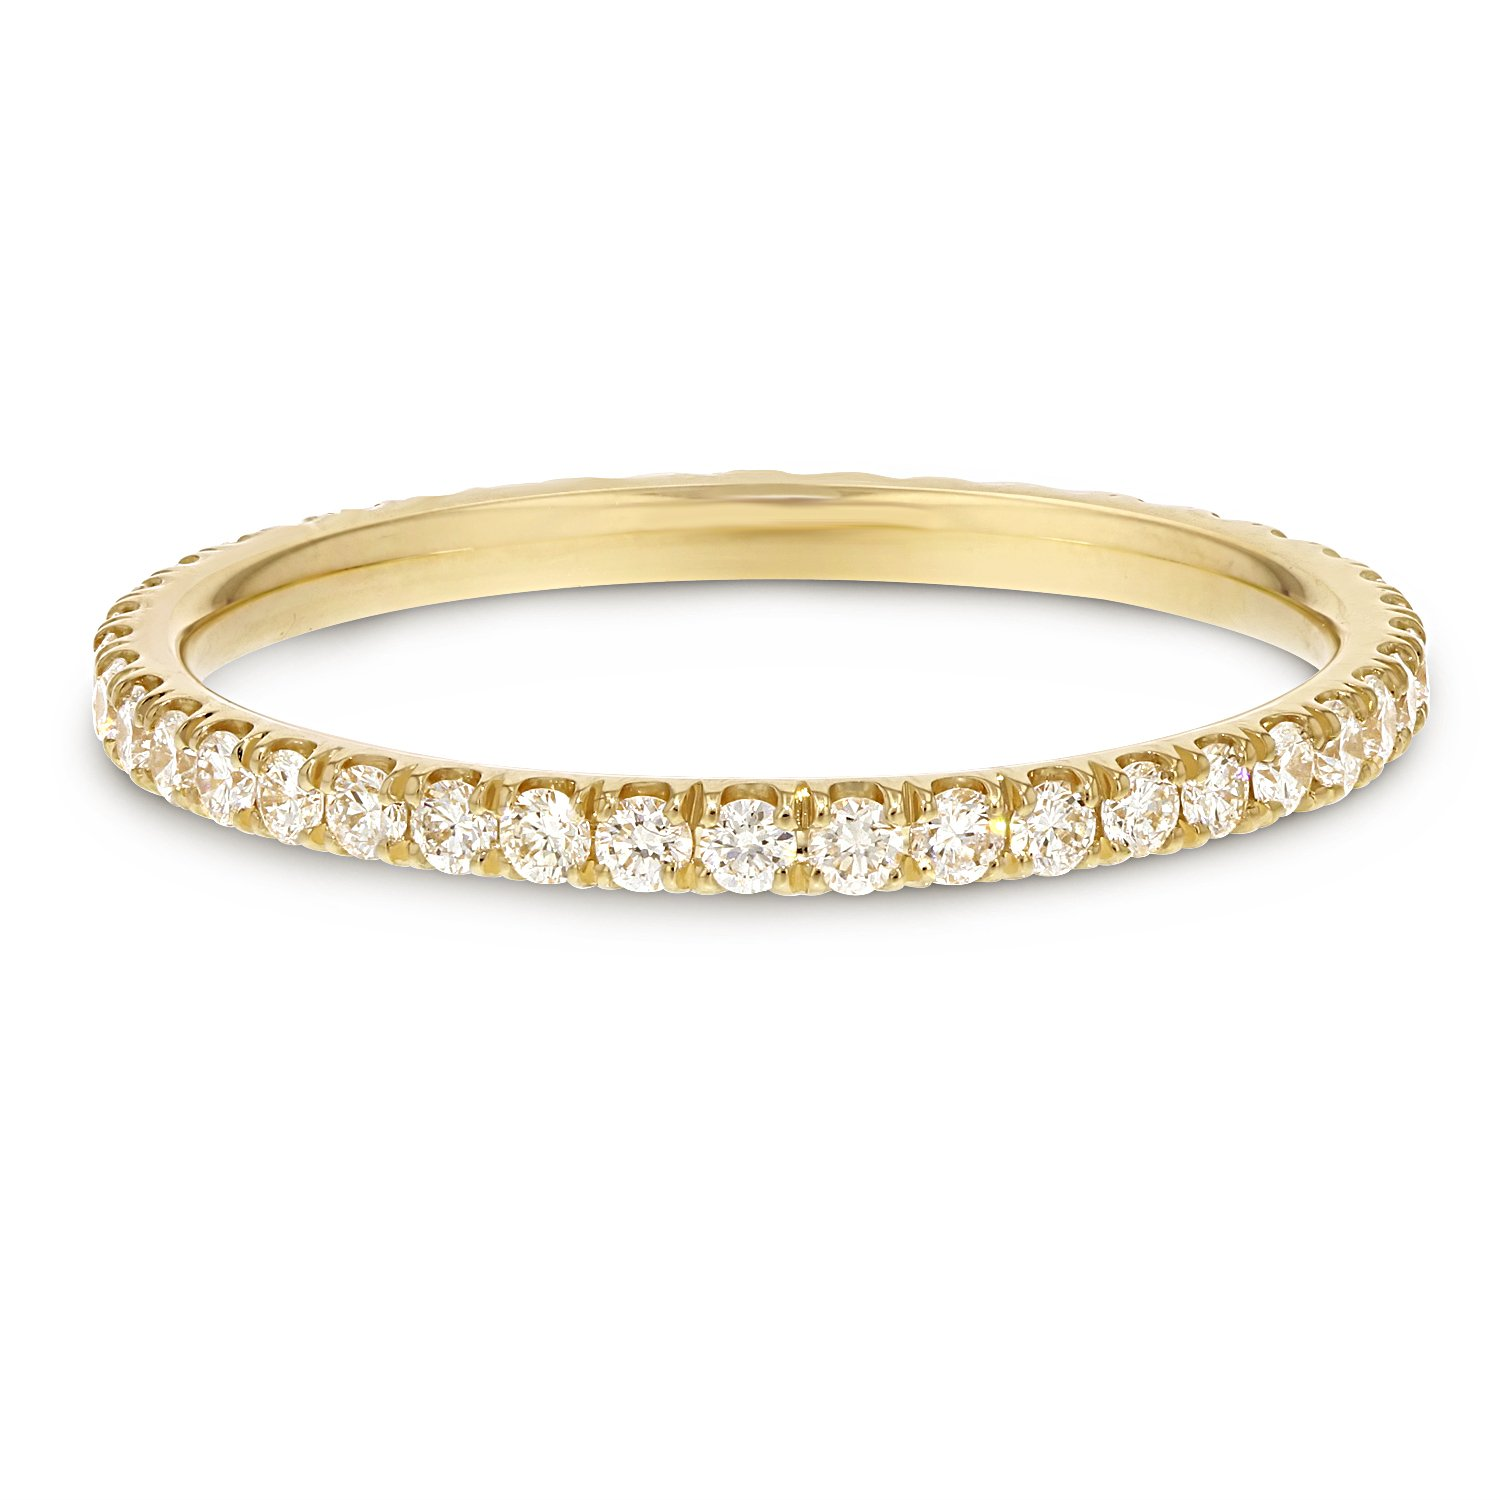 IGI Certified 18K Yellow Gold Comfort Fit Diamond Eternity Band, 1.6mm (0.60 cttw, F-G Color, VS2-SI1)